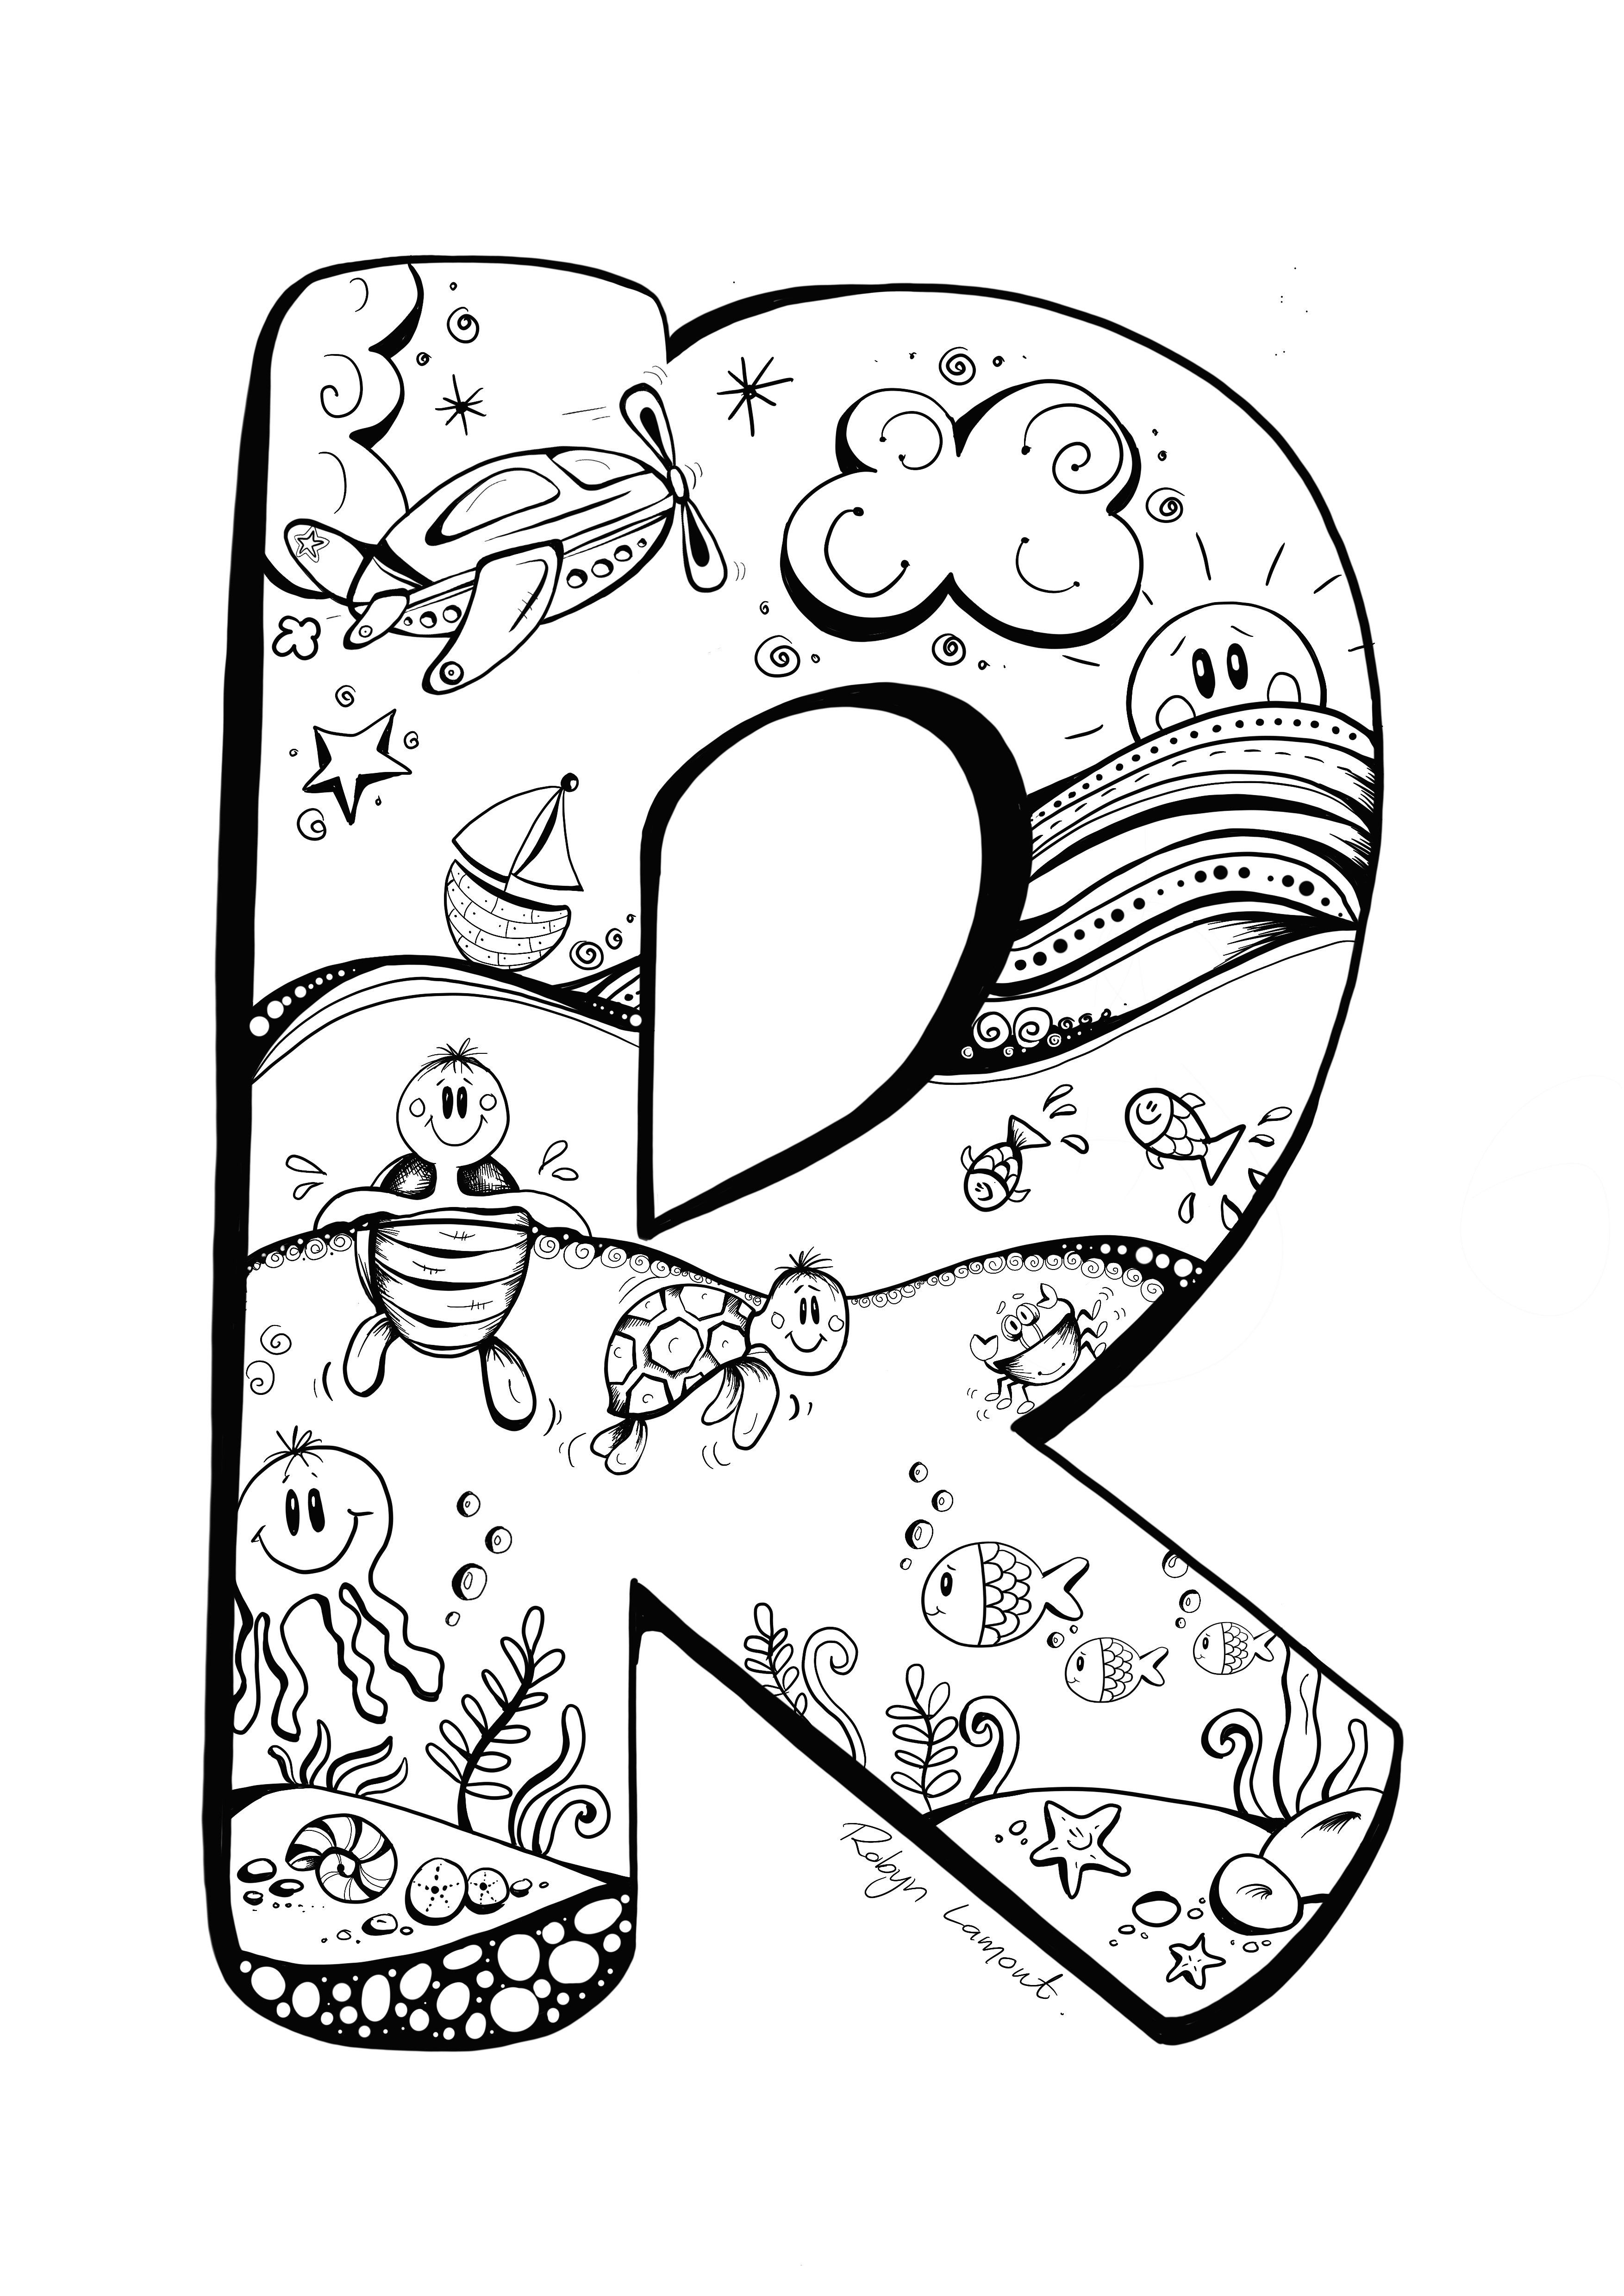 The Letter R Digital Download Robynlamont Doodle Art Designs Abc Coloring Pages Lettering